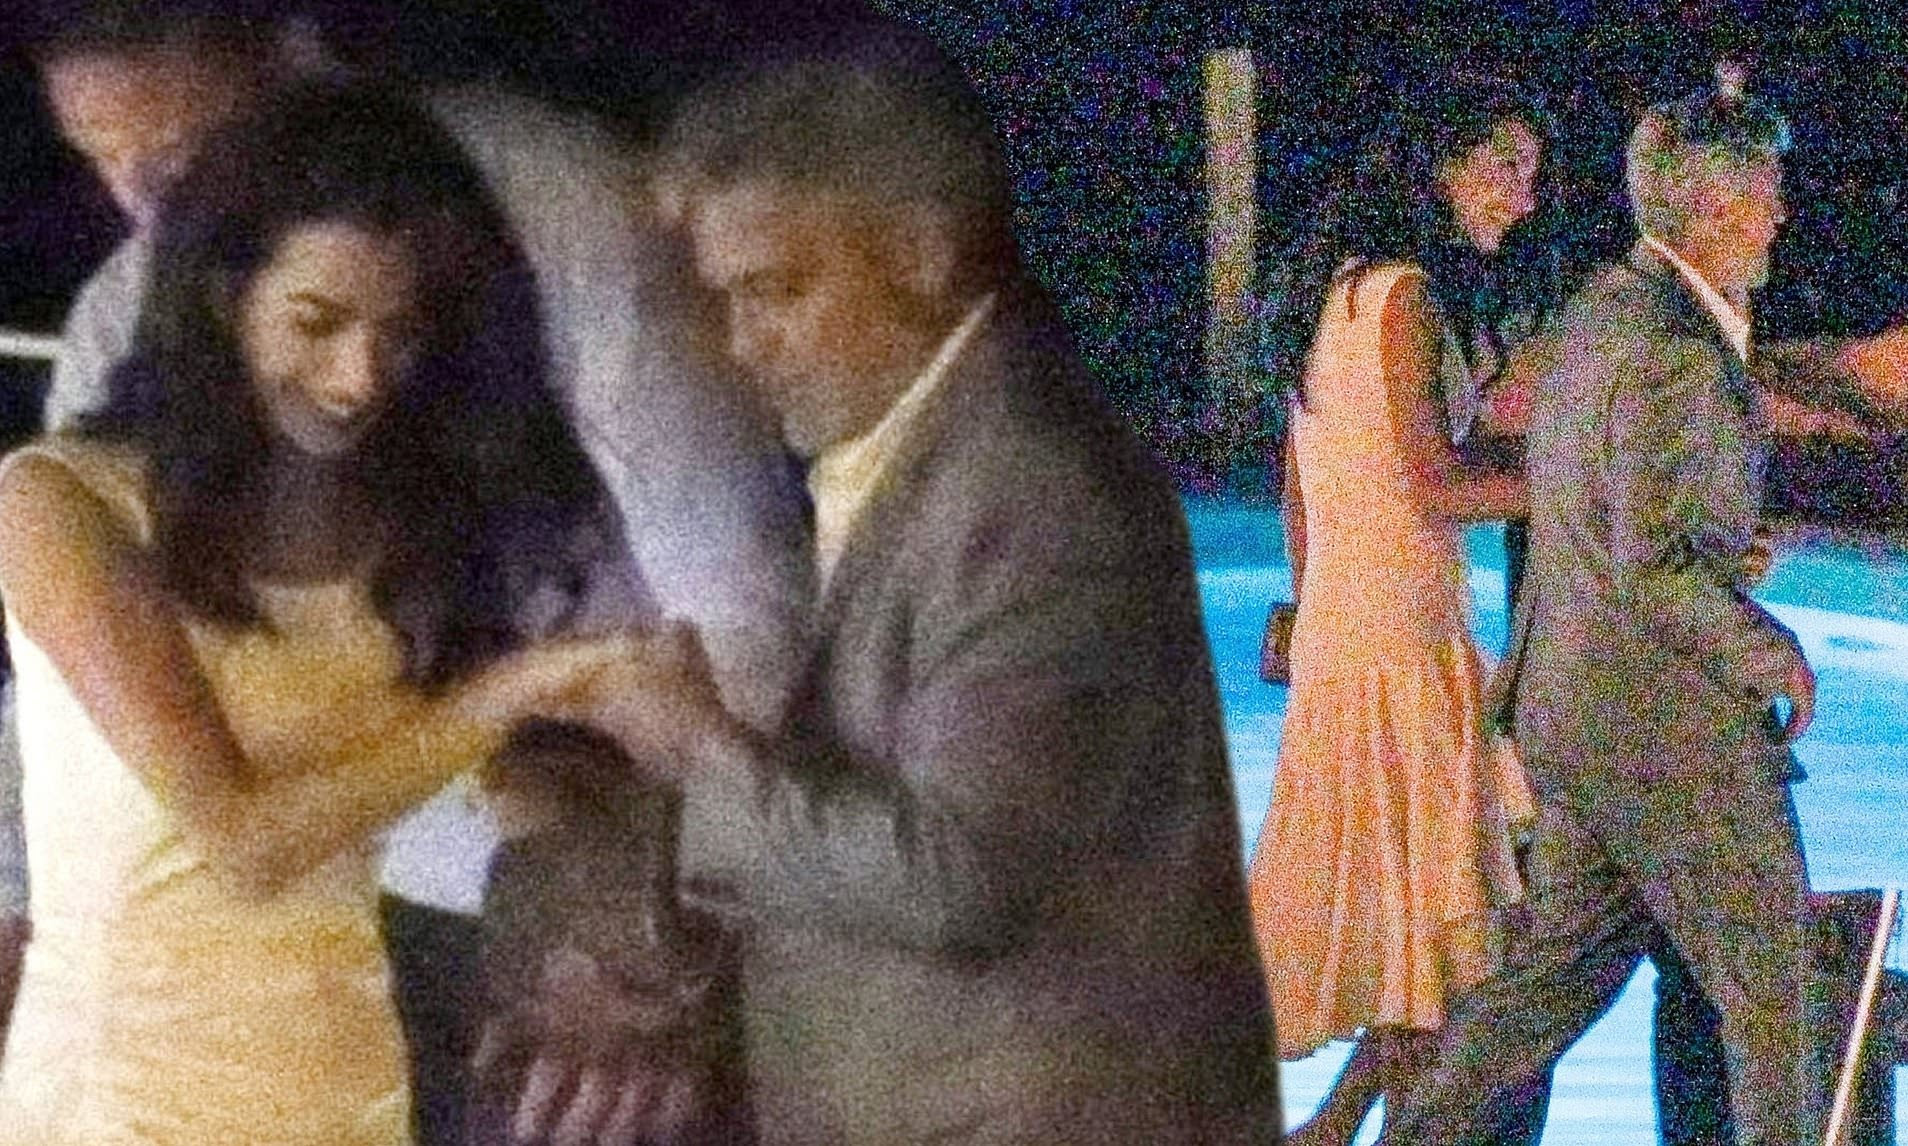 George Clooney helps glamorous wife Amal board a river taxi after a dinner date in Lake Como